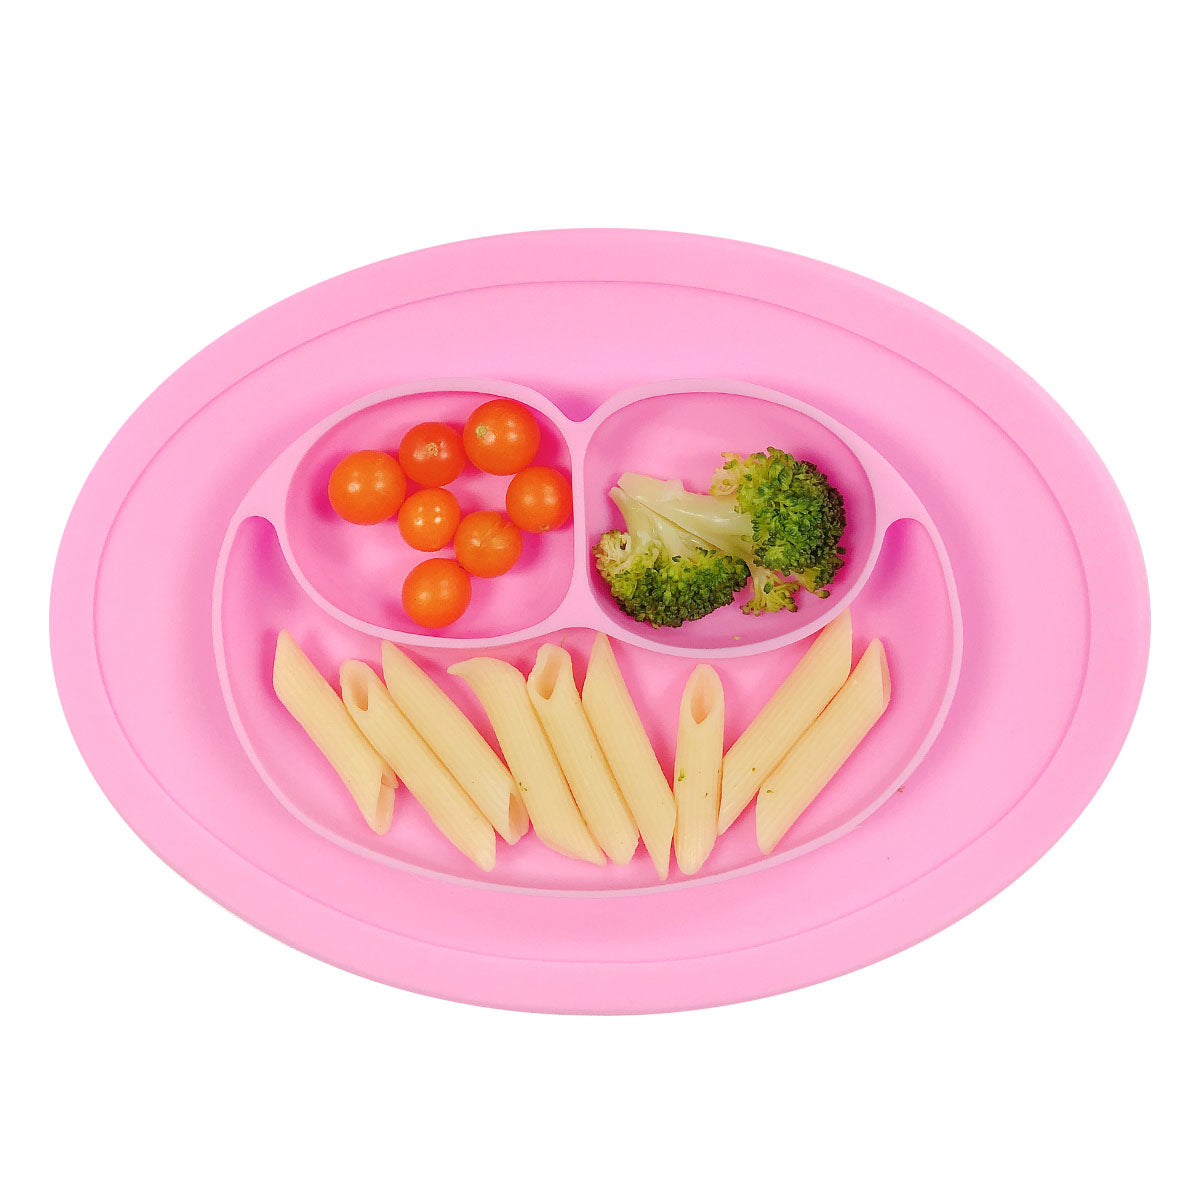 Wrapables® Silicone Placemat + Plate for Baby, Suction Divided Food Plate